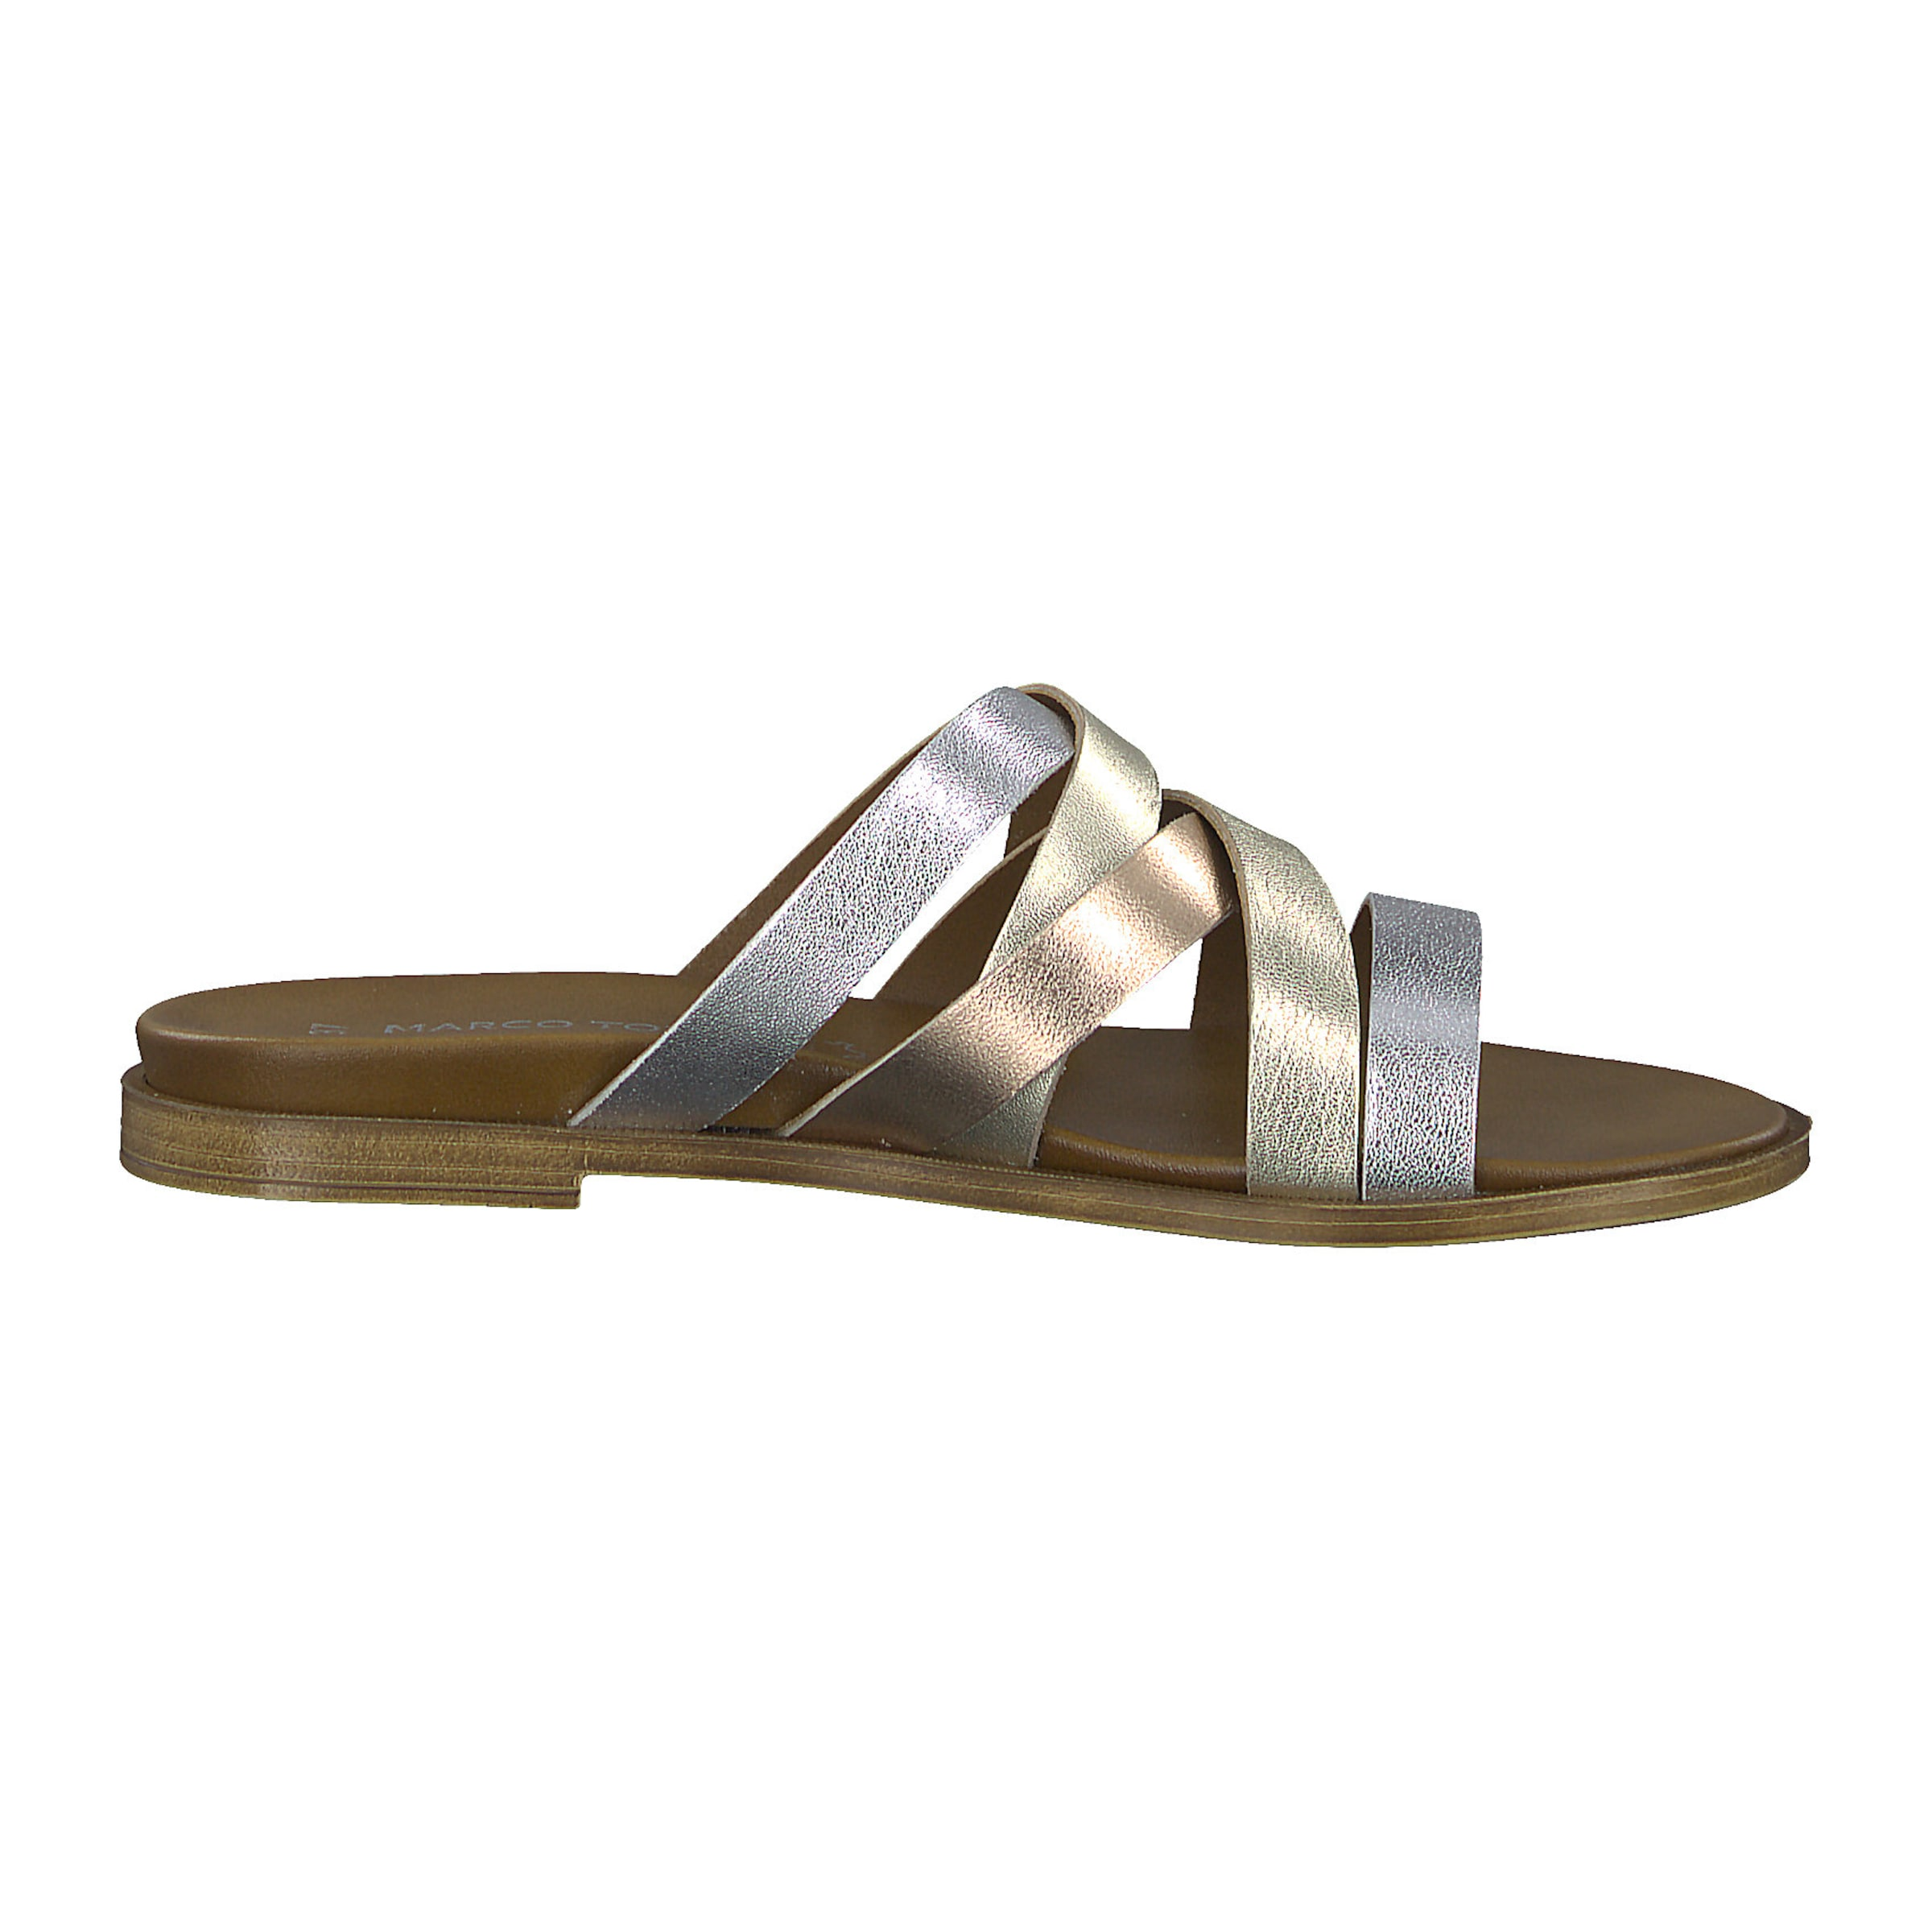 Marco GelbGold Tozzi In Pantolette Silber 6yYbf7gv